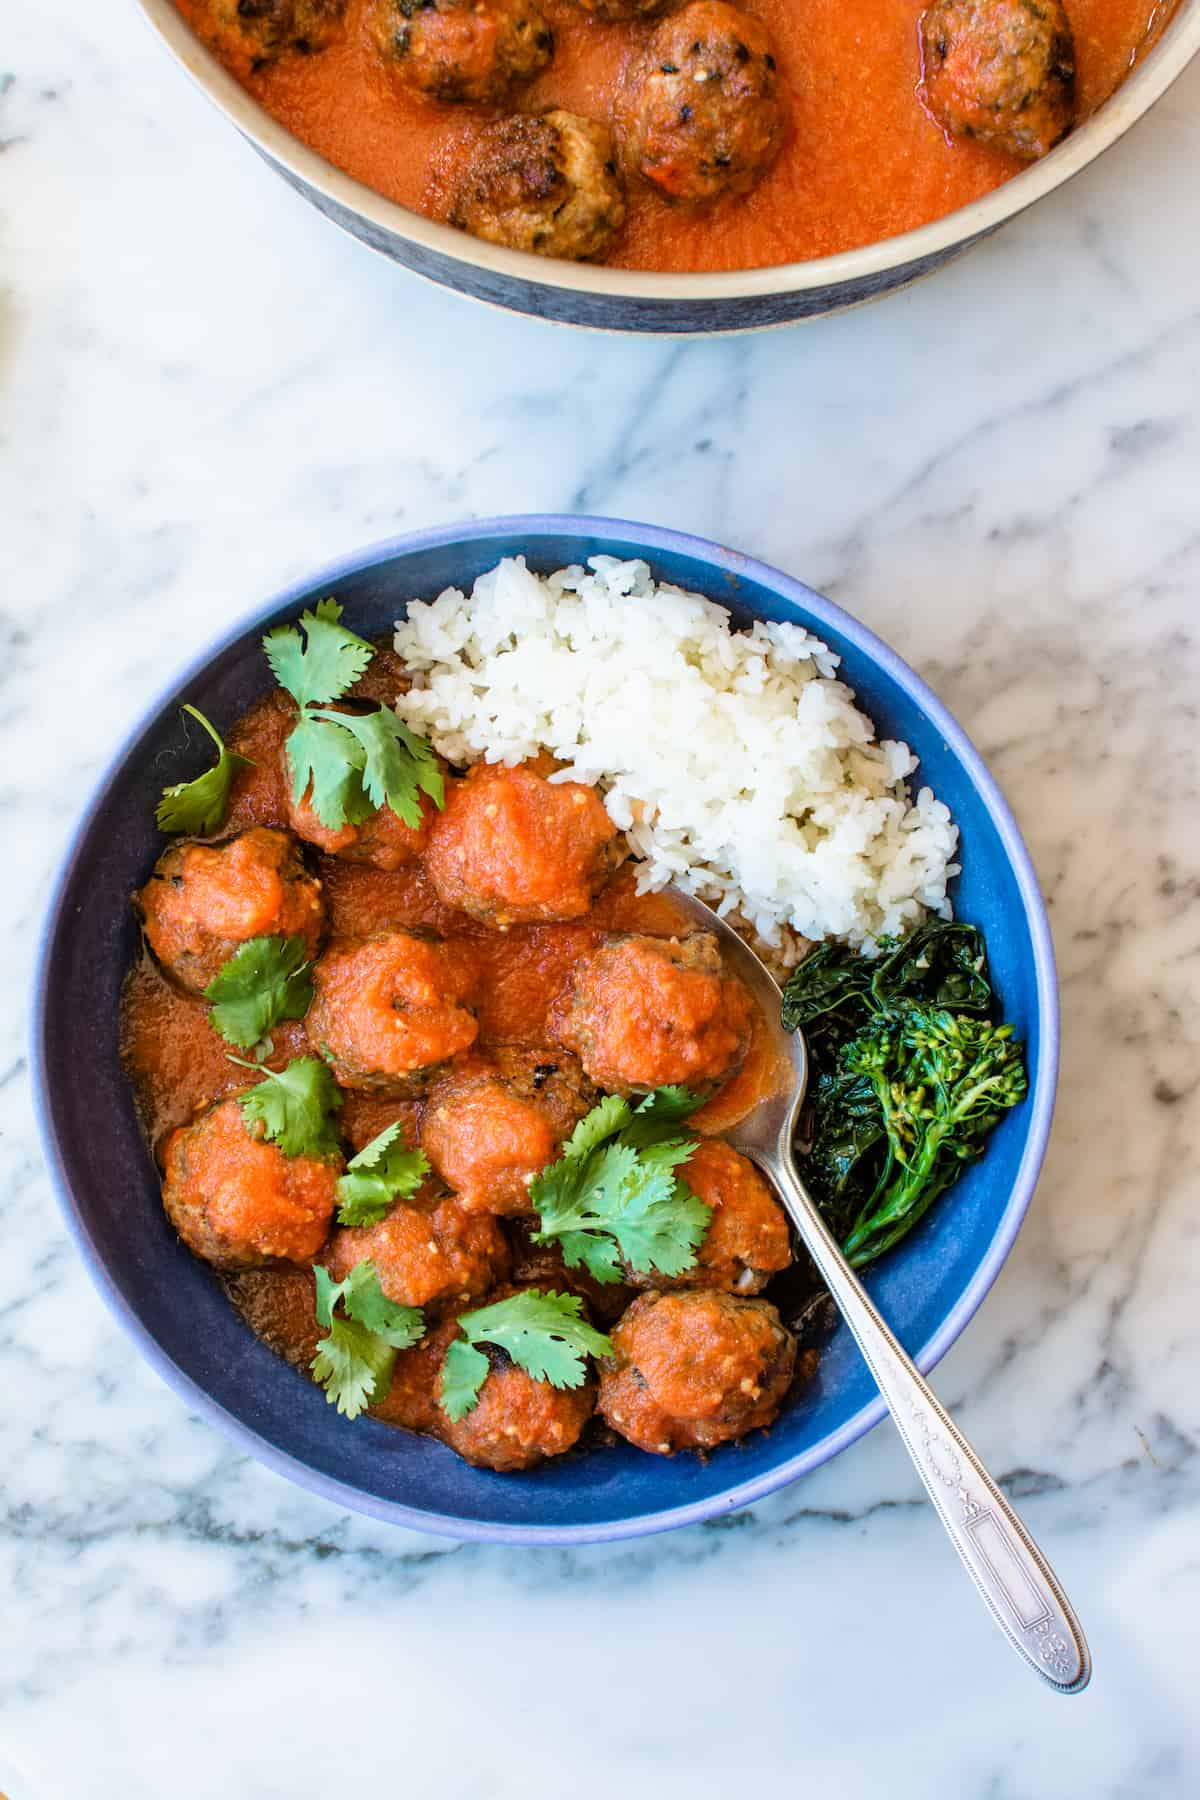 Overhead image of a bowl of albondigas with rice and green vegetables sitting on a marble table with a spoon in the bowl.